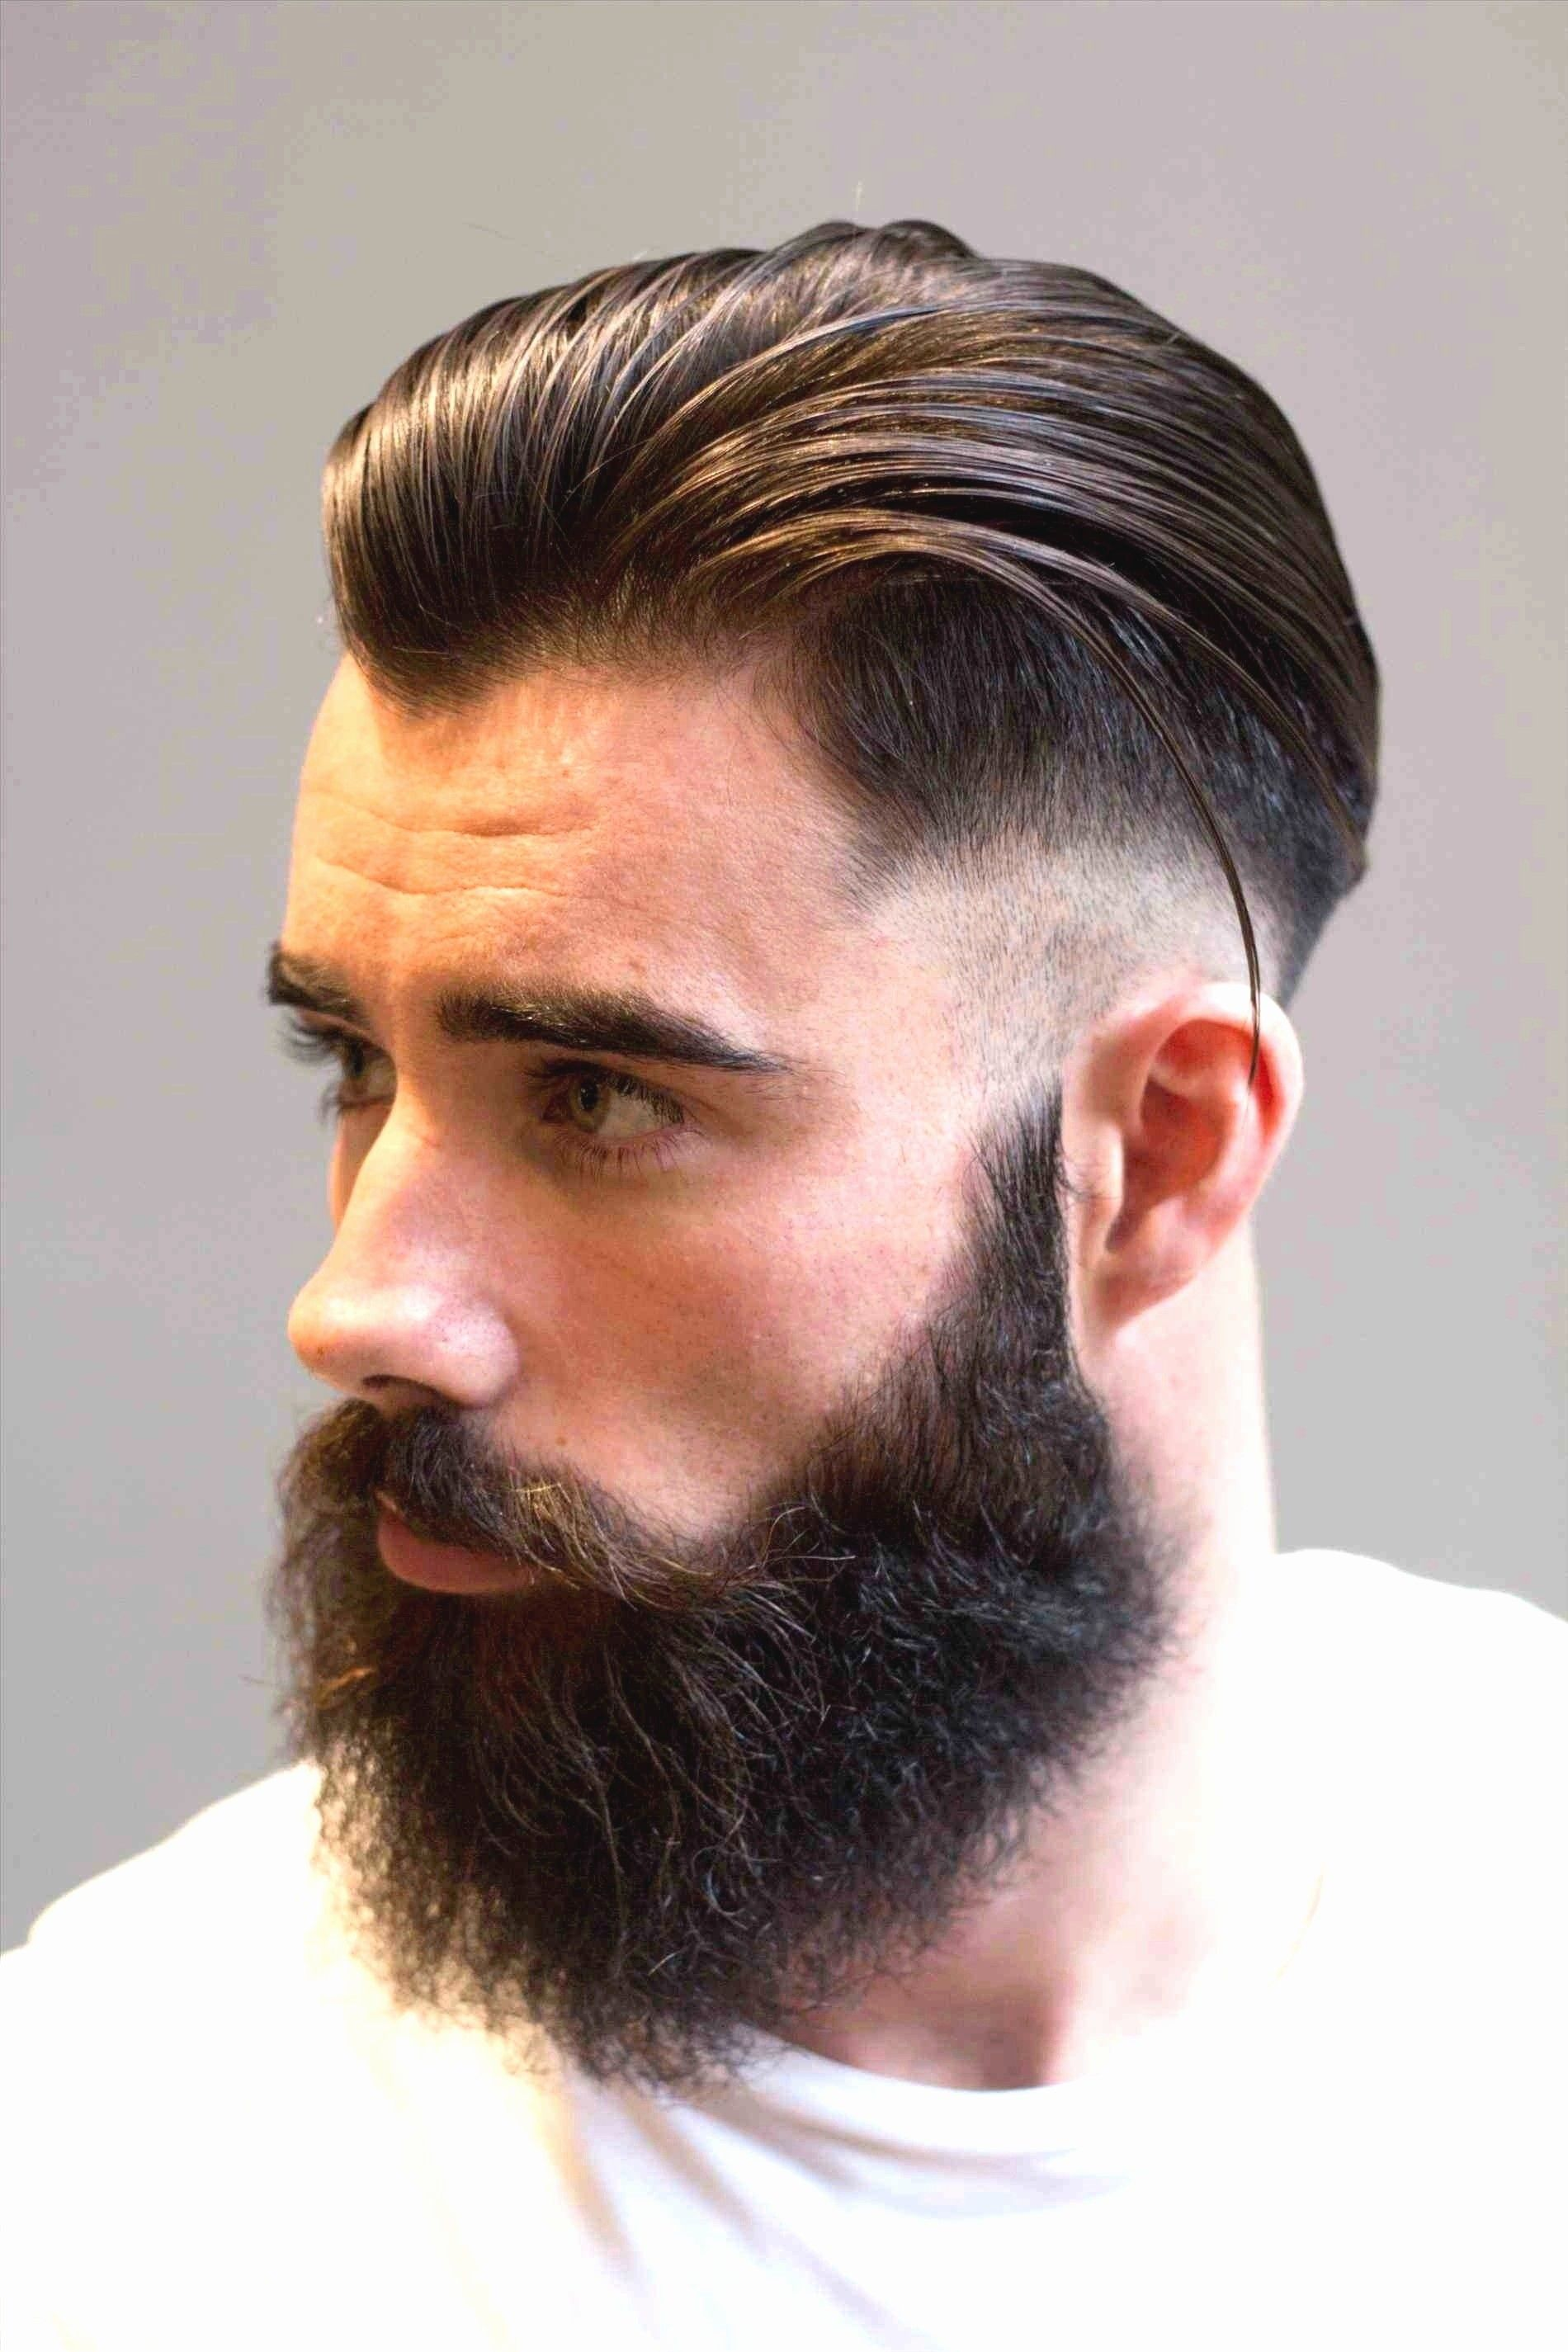 40 year old mens hairstyles 2018 | hair inspiration | beard